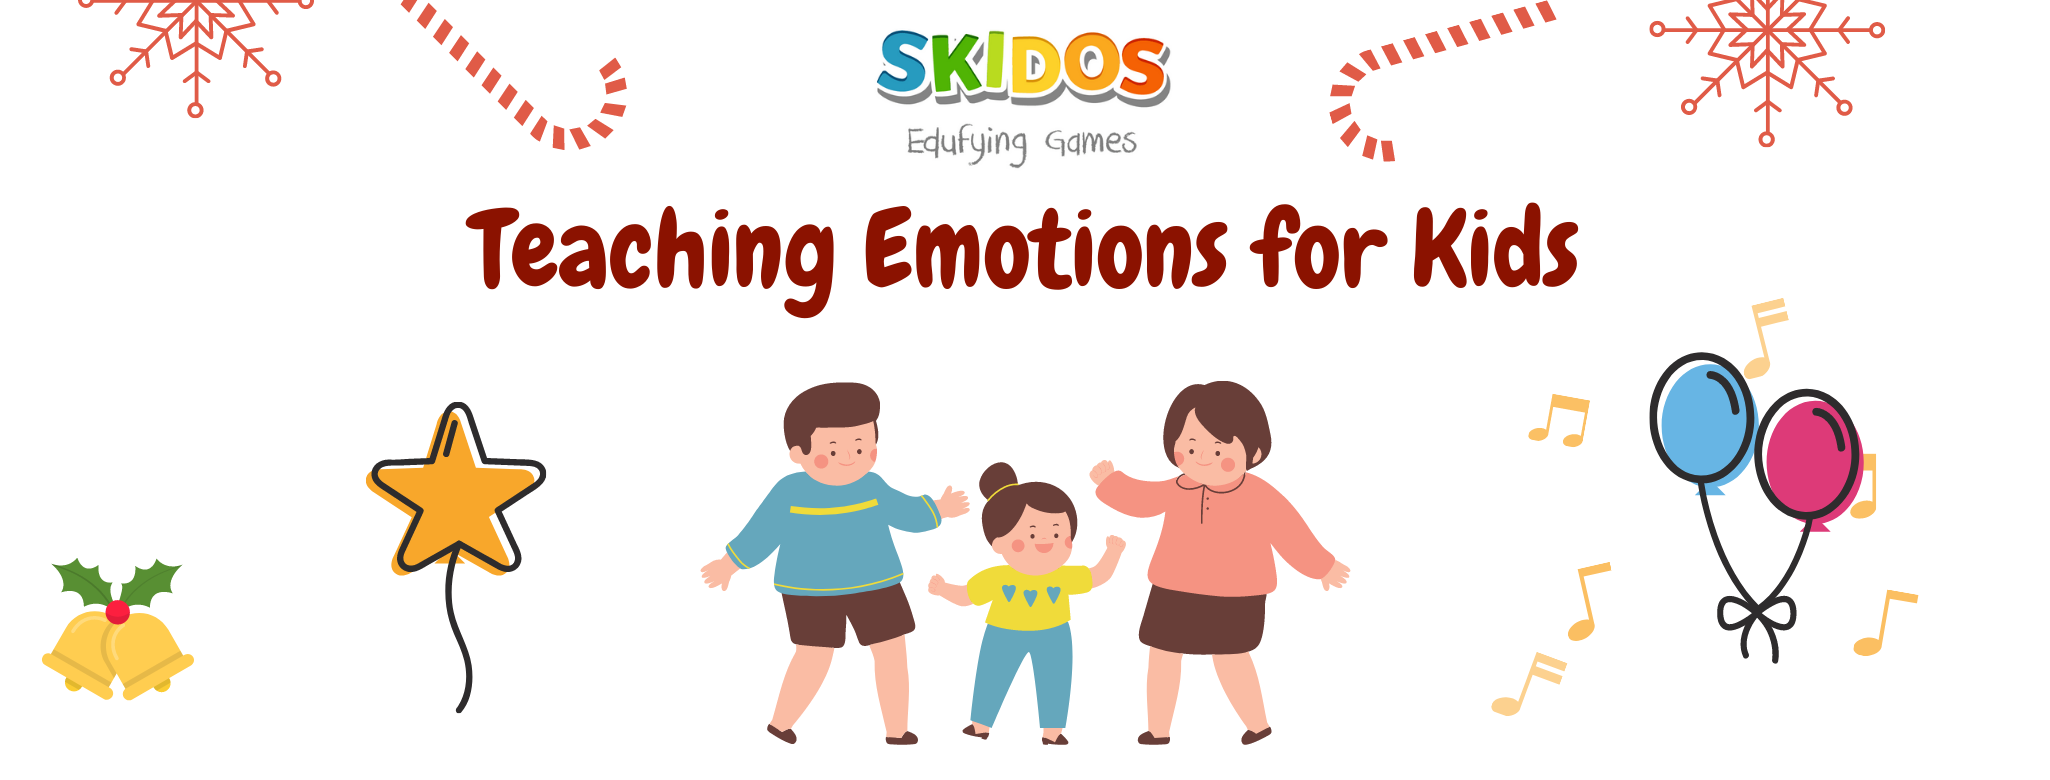 Emotions for kids: 20 Things, Ideas you need to know!